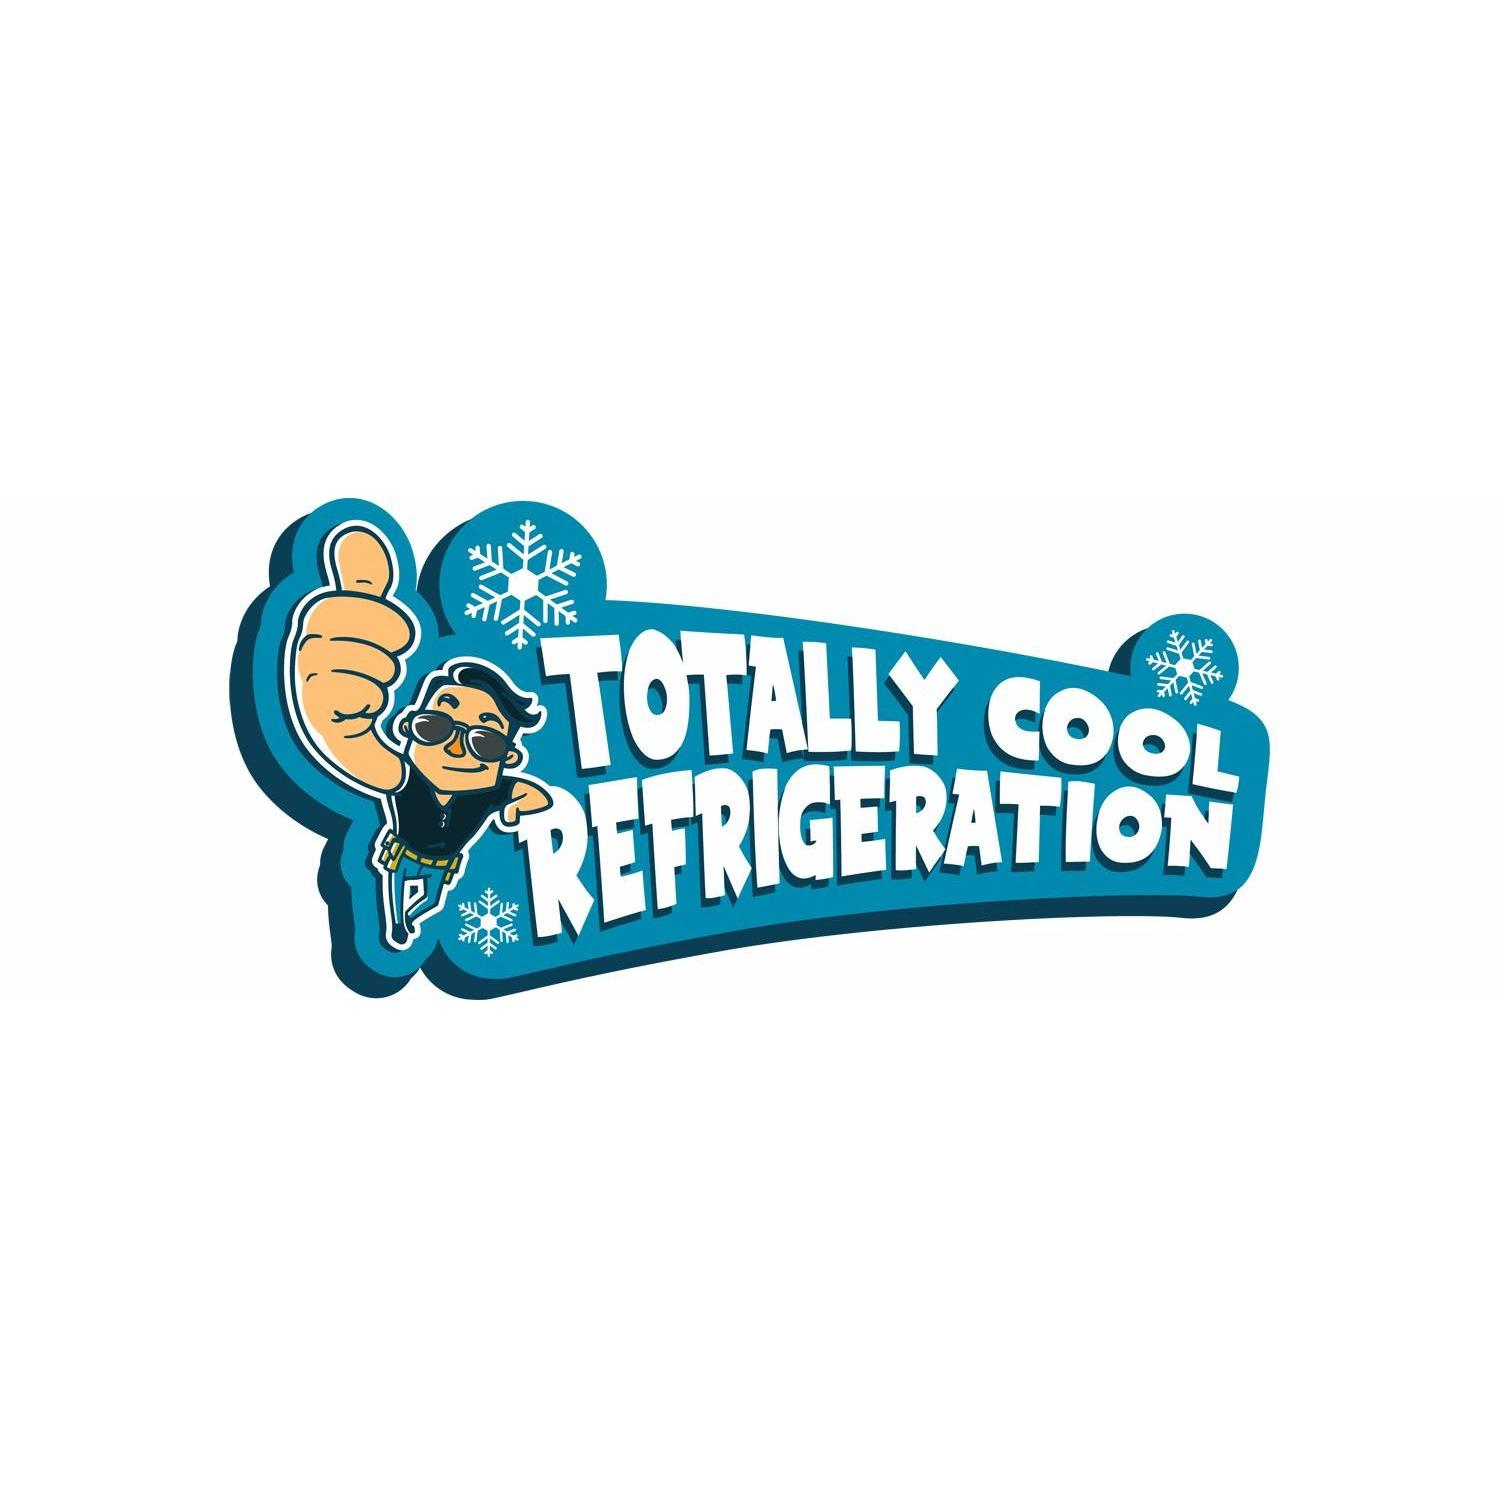 Totally Cool Refrigeration